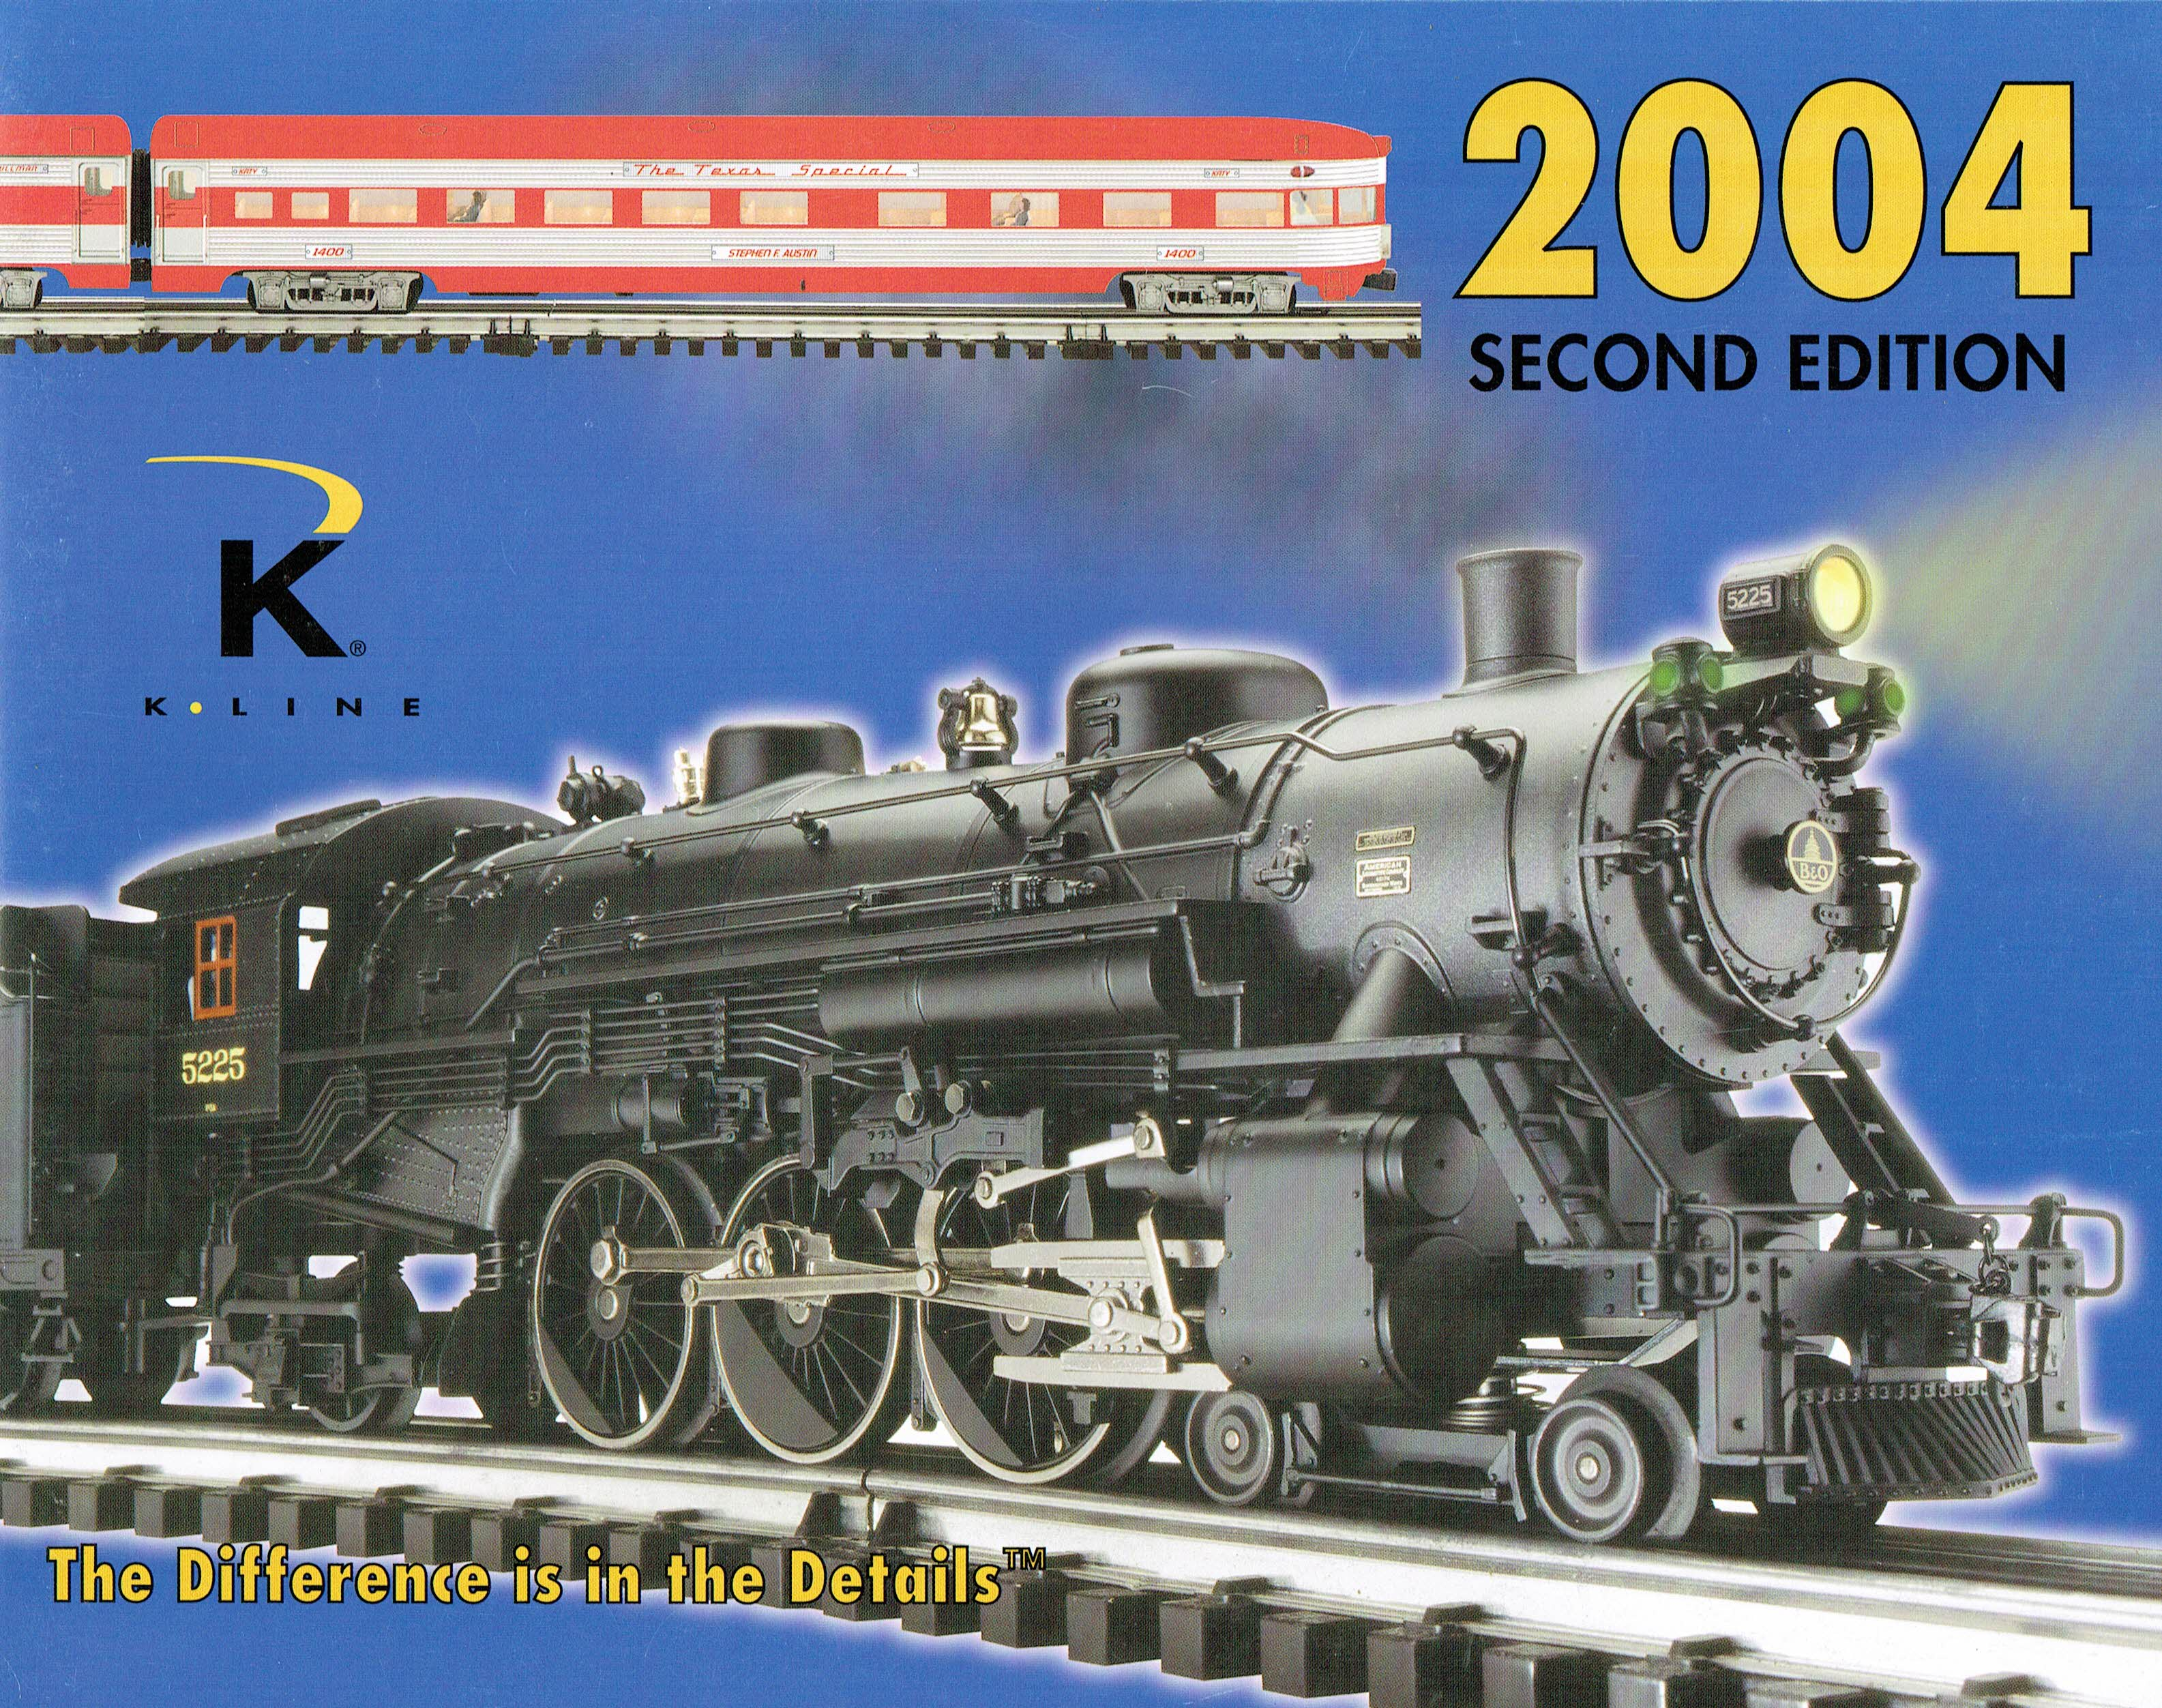 K-Line 2004 Second Edition Catalog image